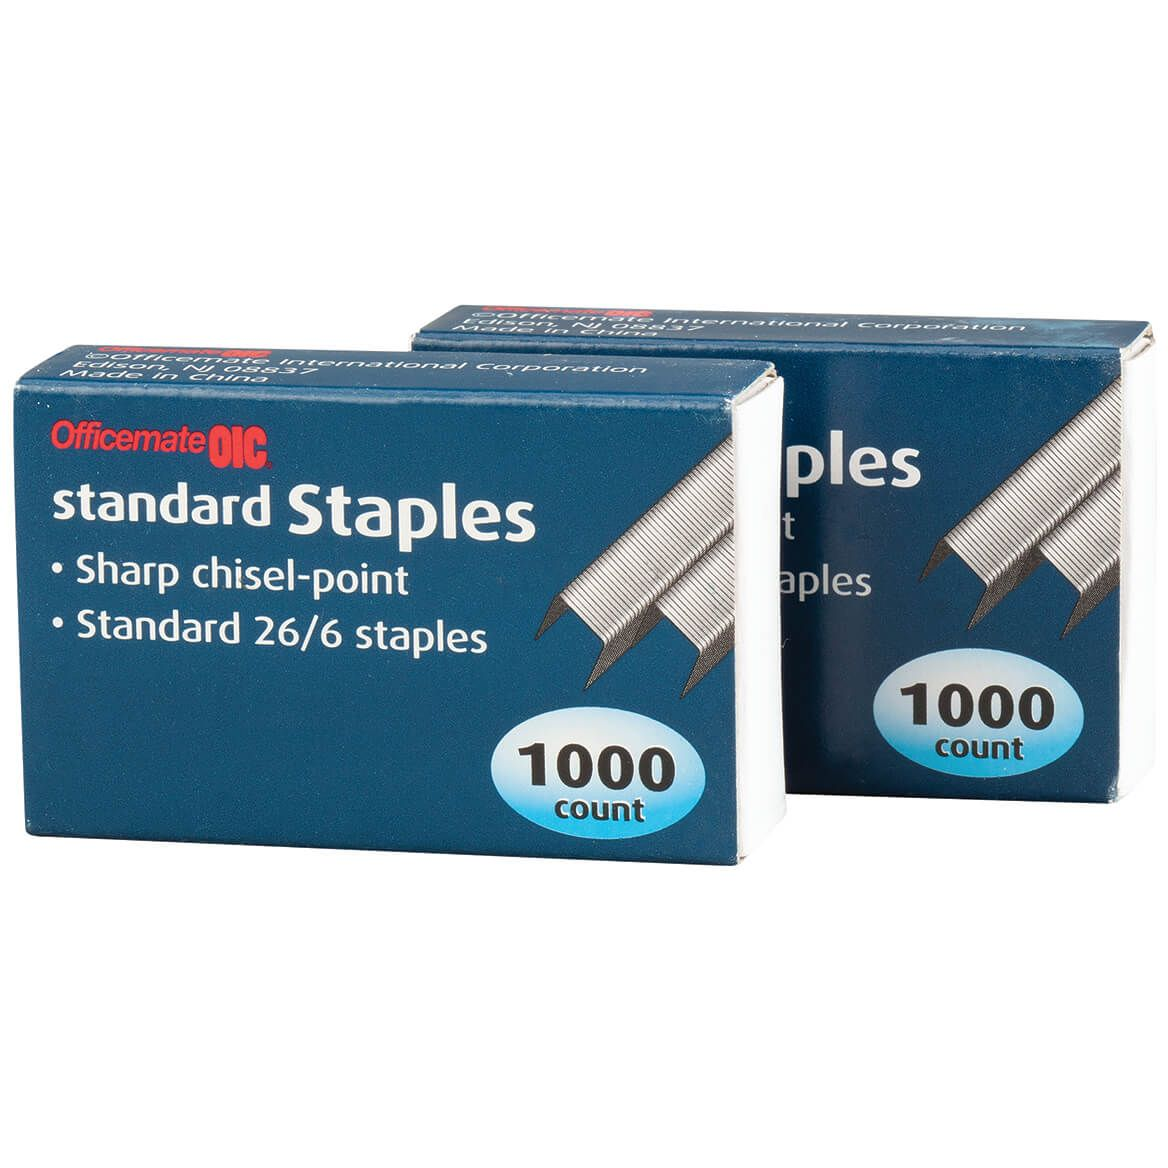 Officemate® OIC® Standard Staples, Set of 2000-371045